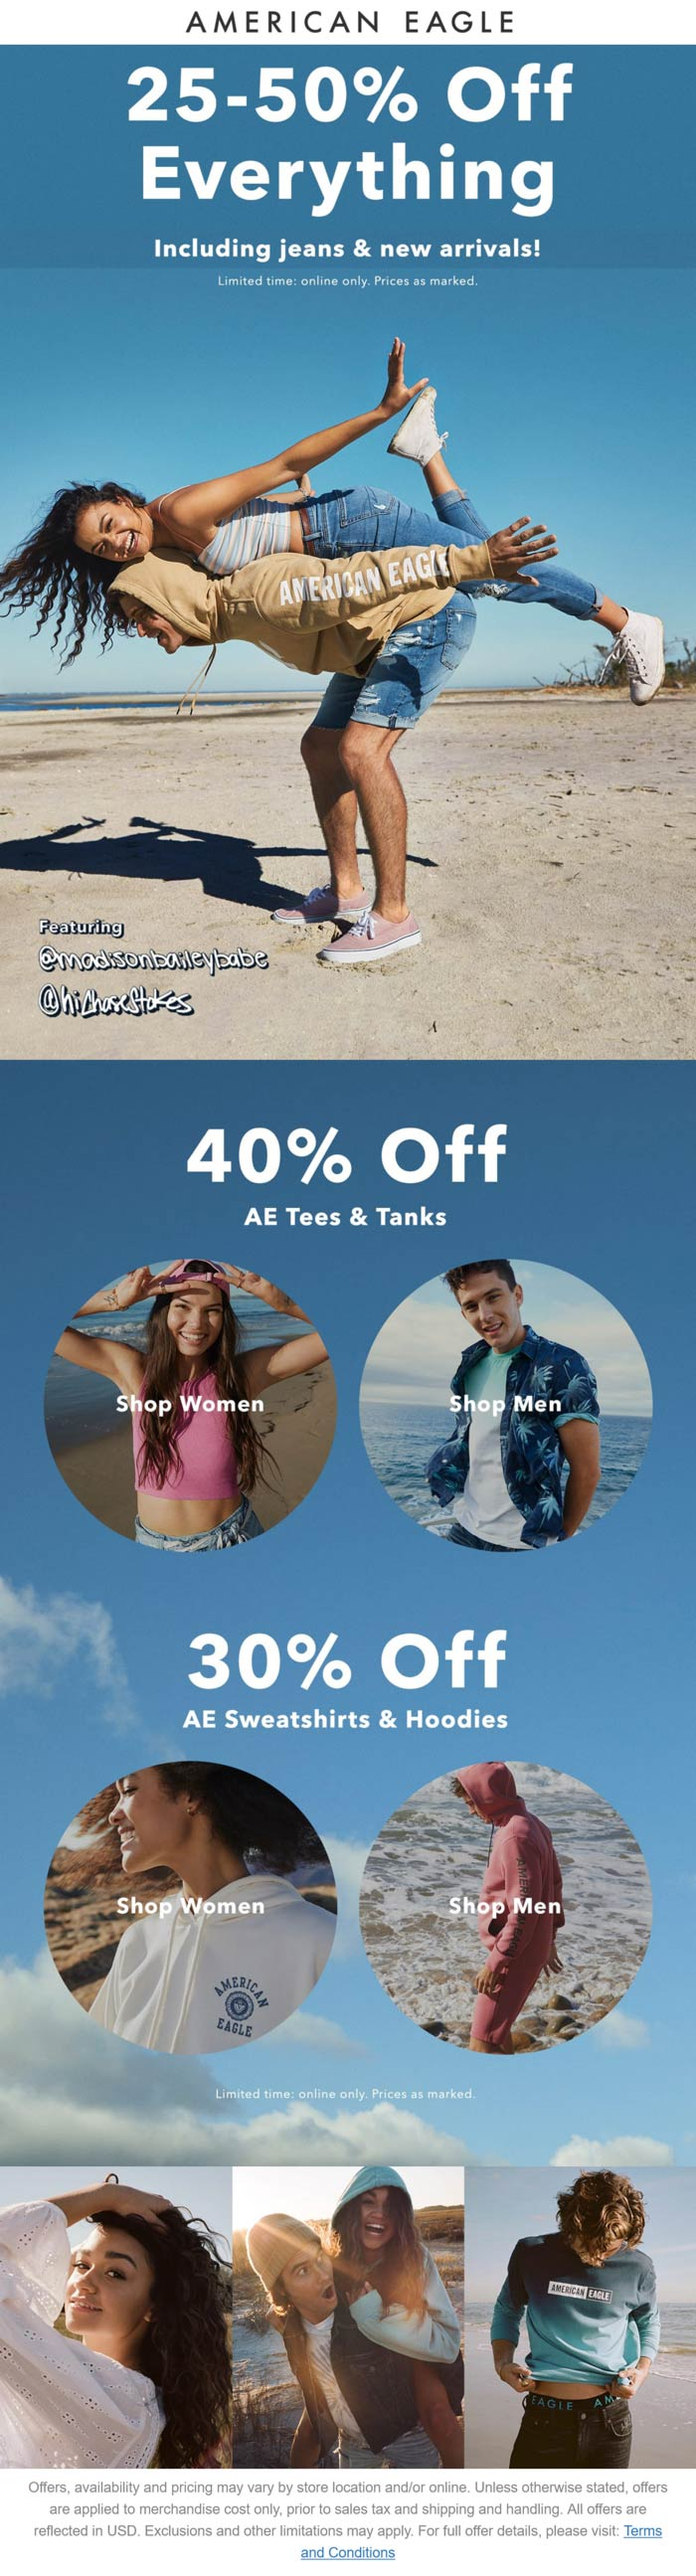 American Eagle stores Coupon  25-50% off everything online at American Eagle #americaneagle